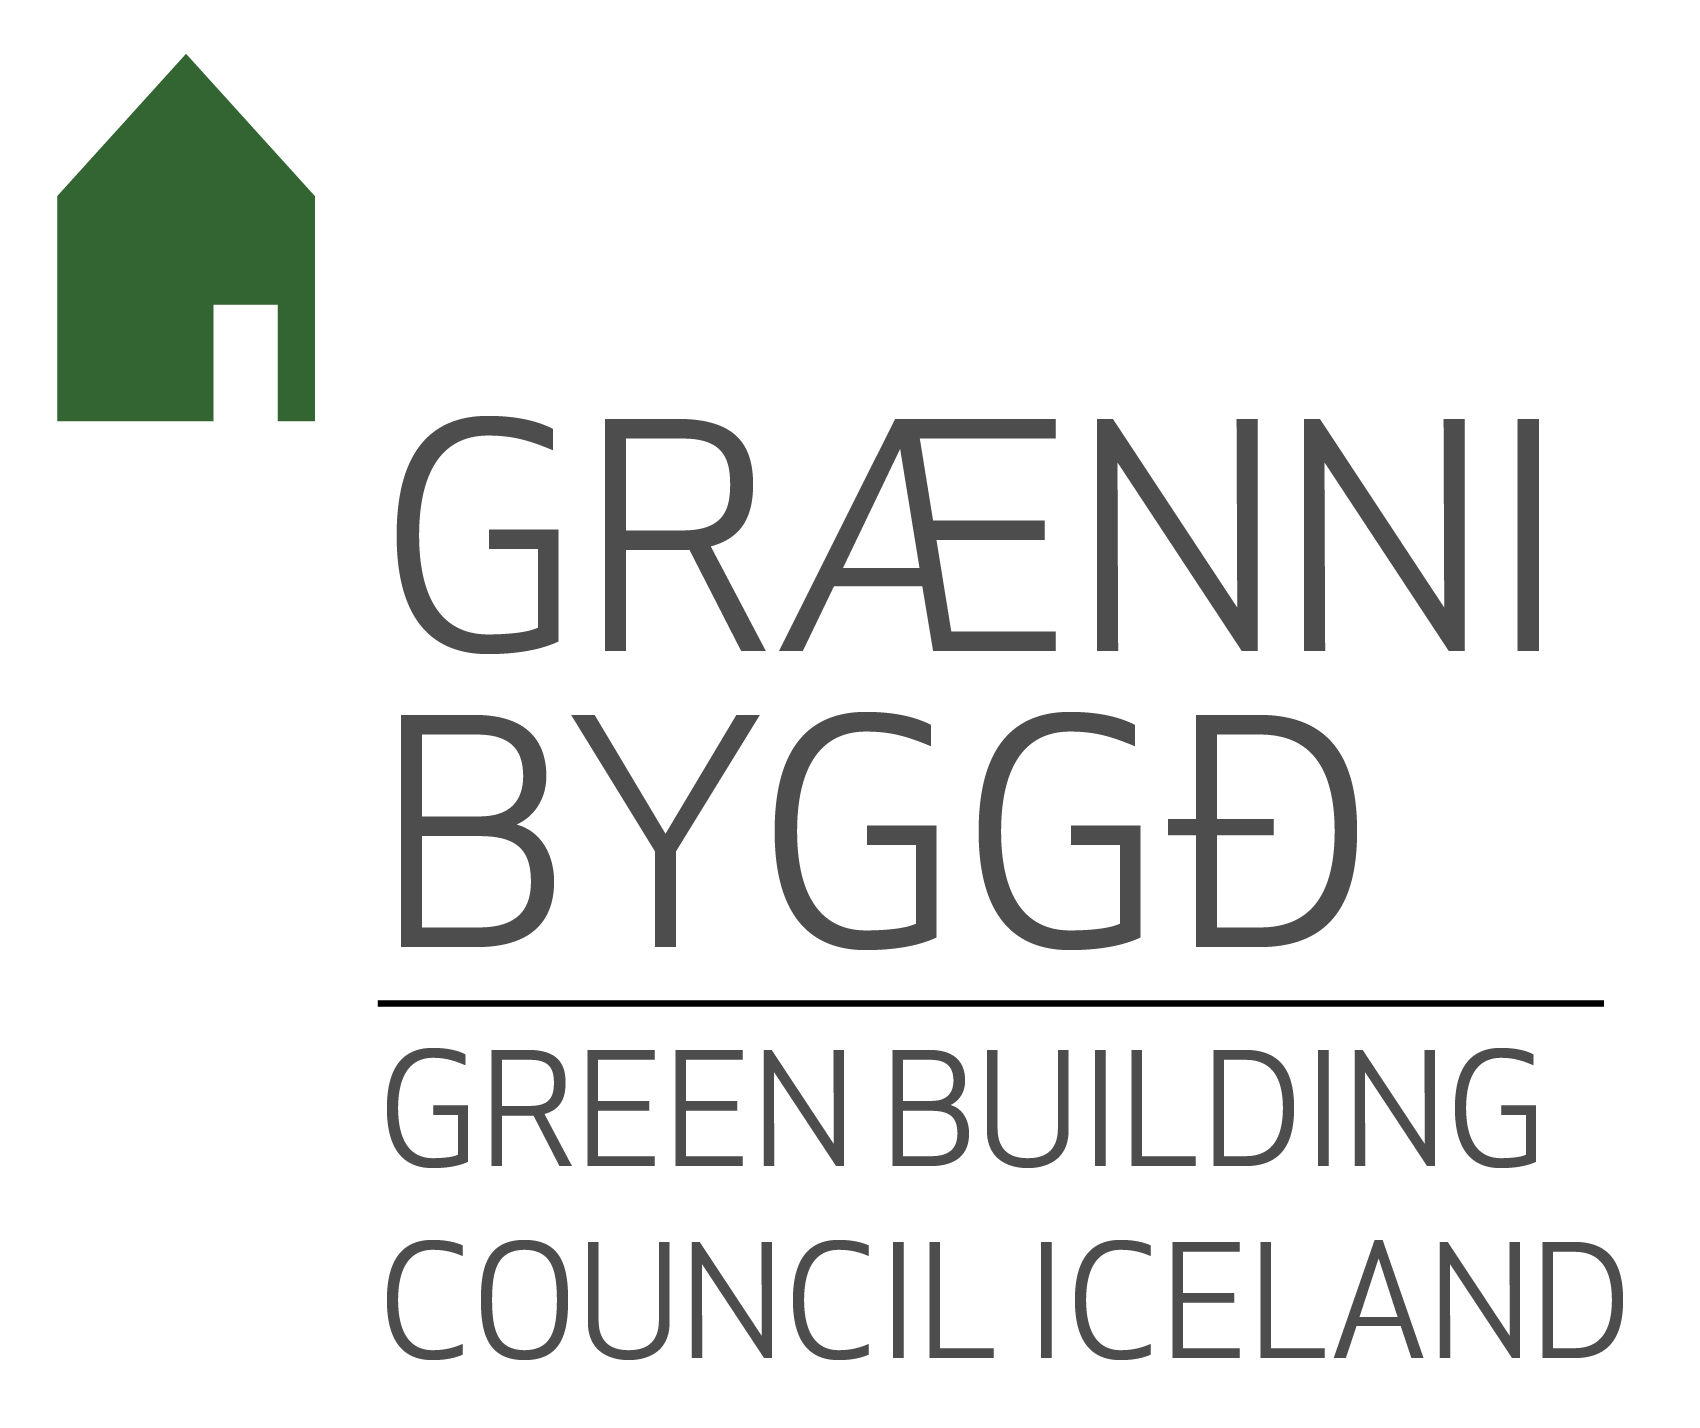 Grænni byggð - Green Building Council Iceland